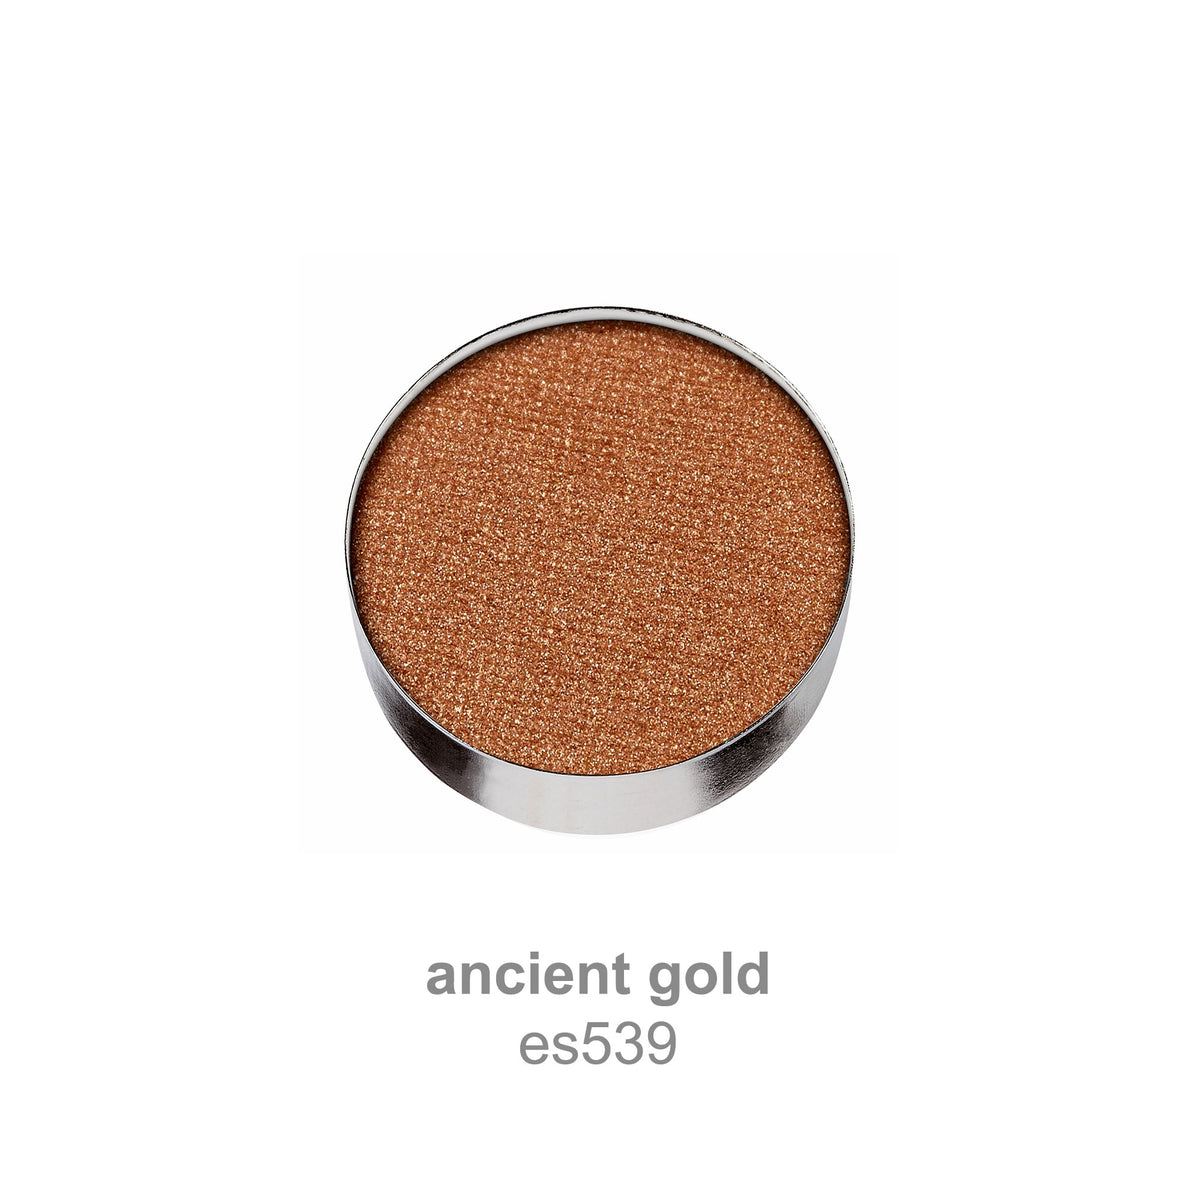 ancient gold (es539)